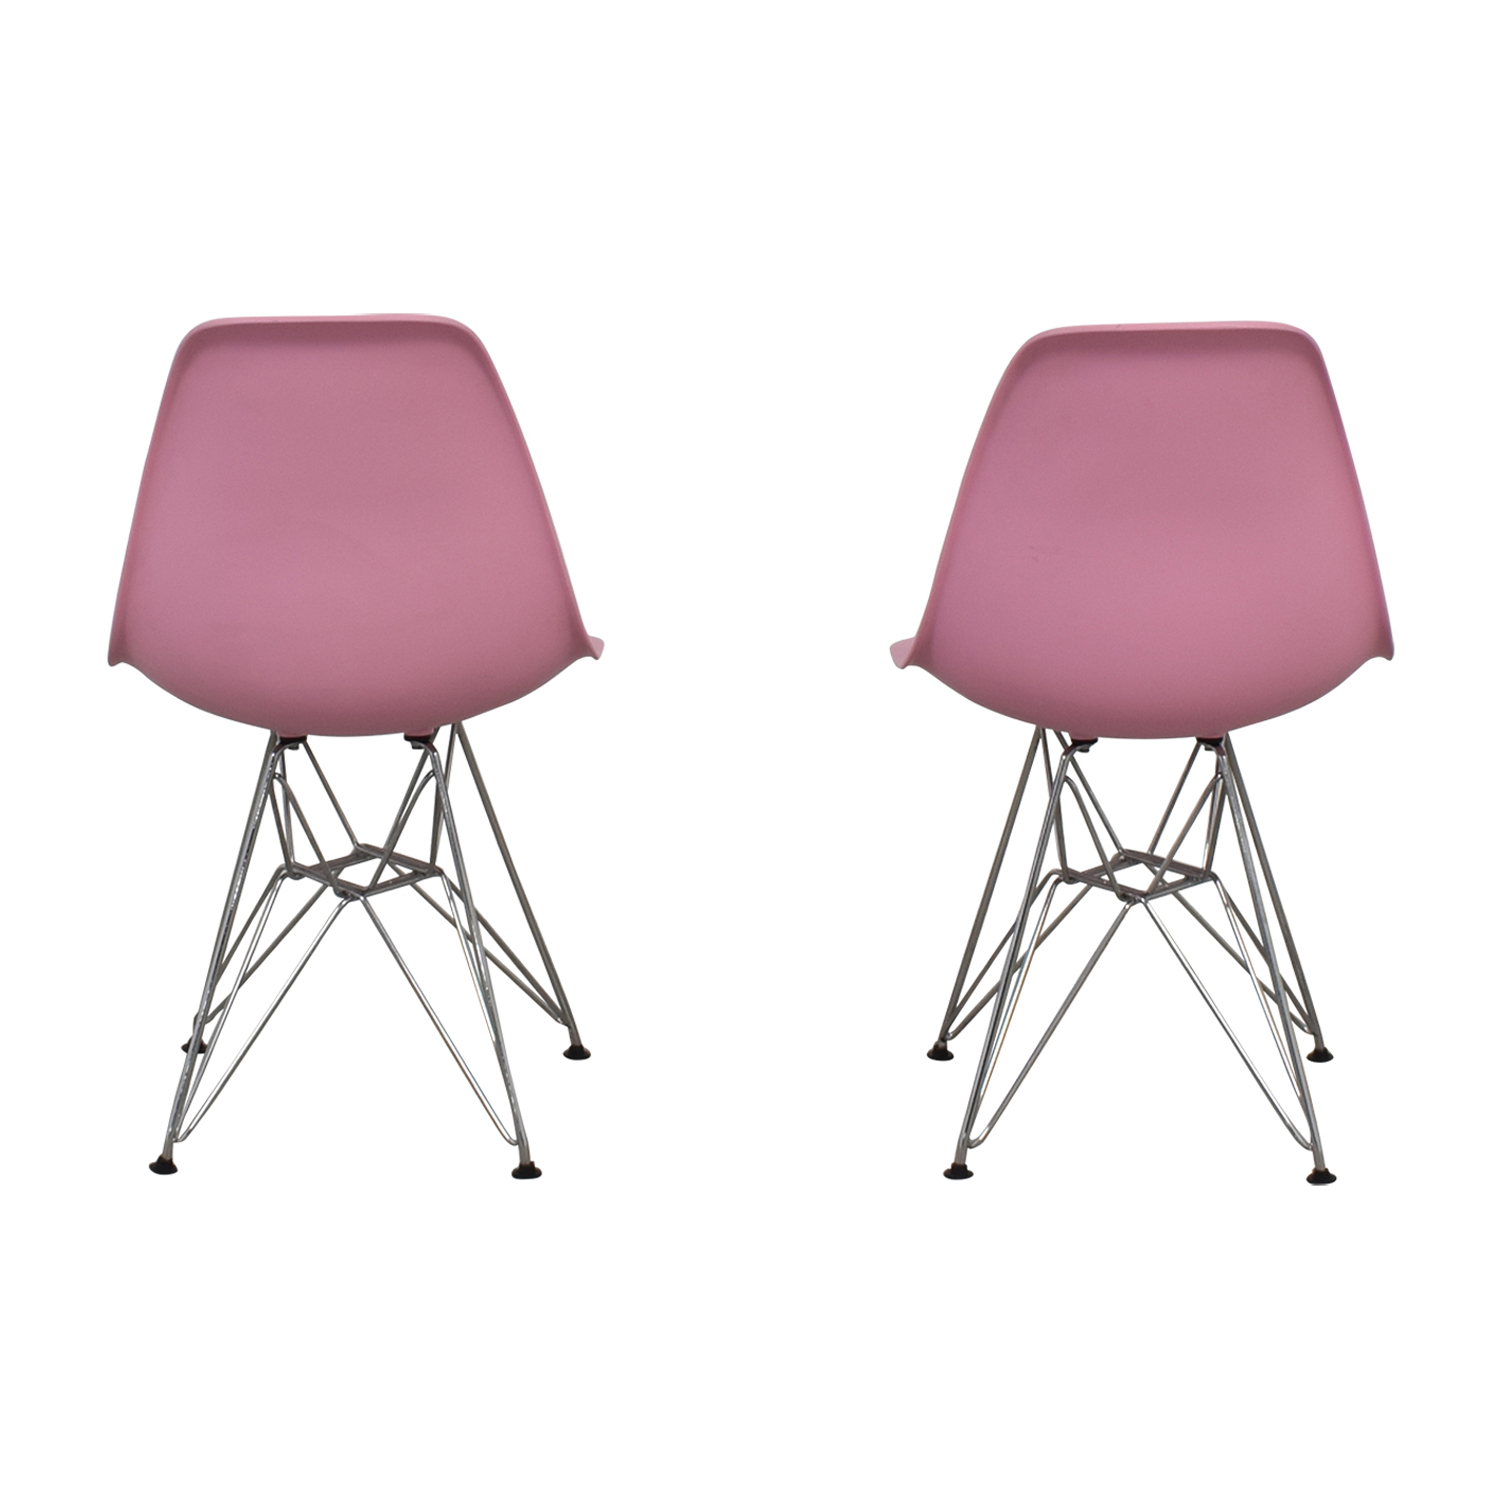 Mid-Century Light Pink Chairs on sale